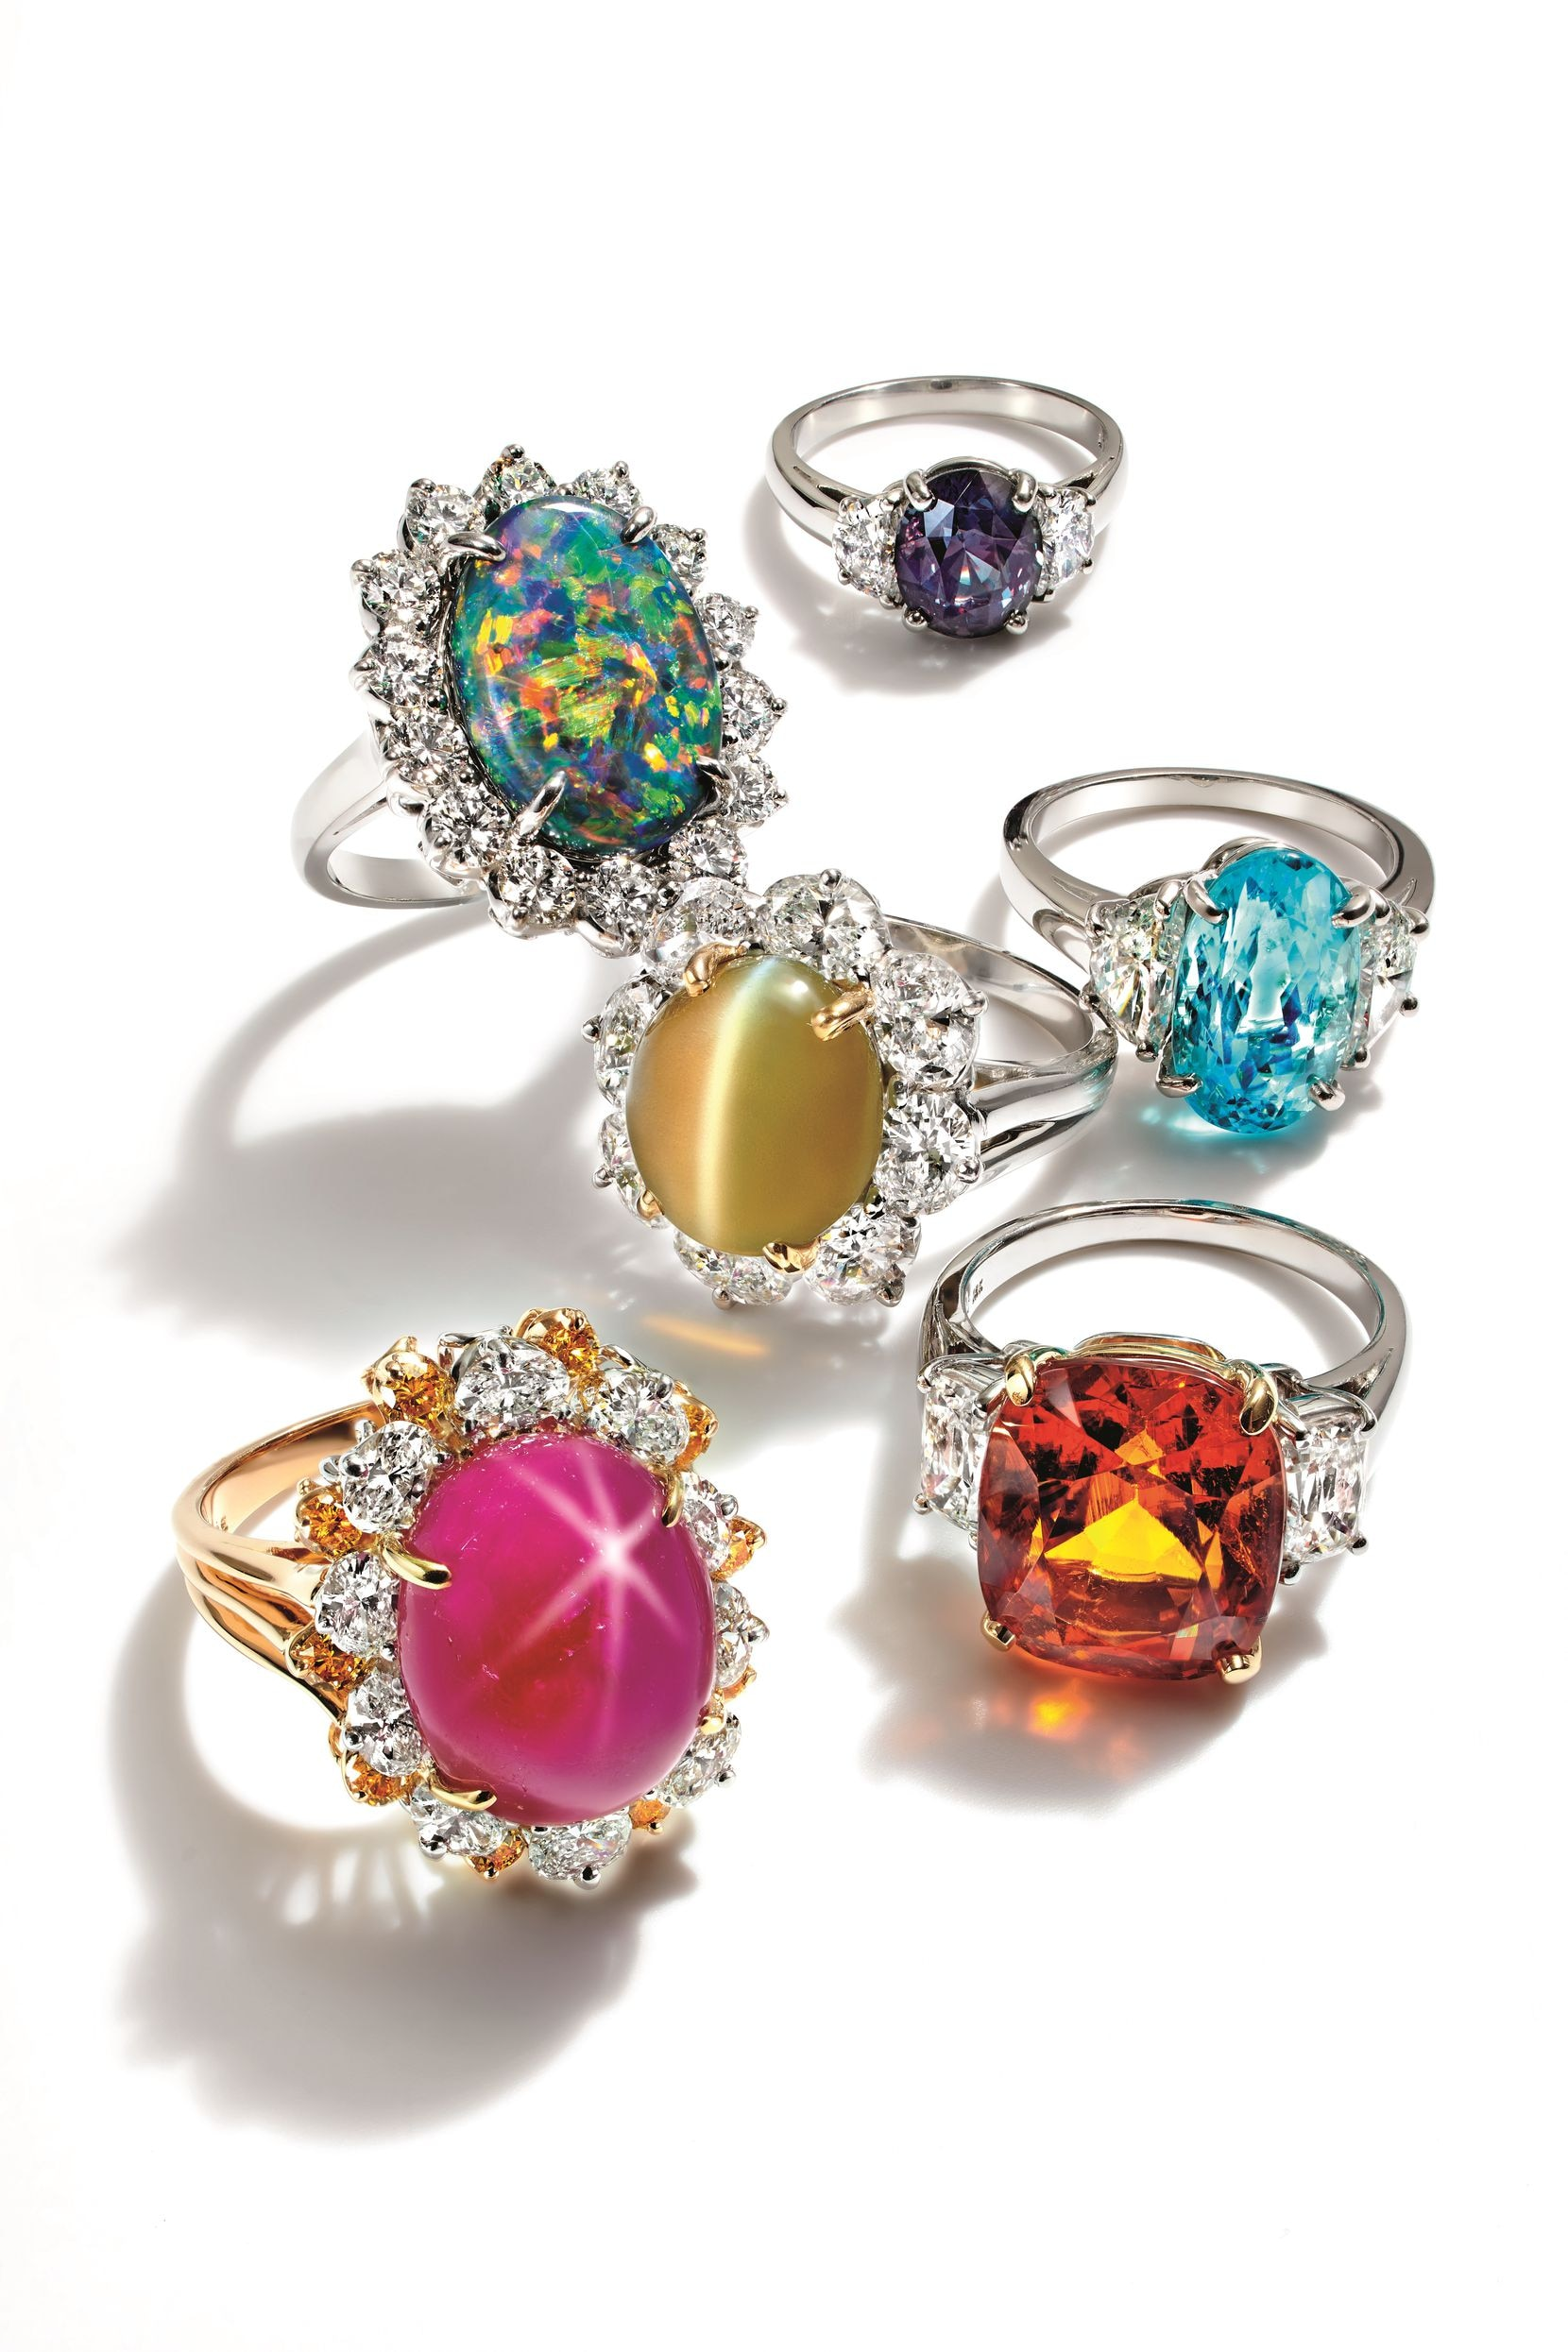 Six one-of-a-kind Oscar Heyman rings cost $100,000 to $190,000 each or $860,000 for all six. The collection is a fantasy gift in the Neiman Marcus 2020 Christmas Book.